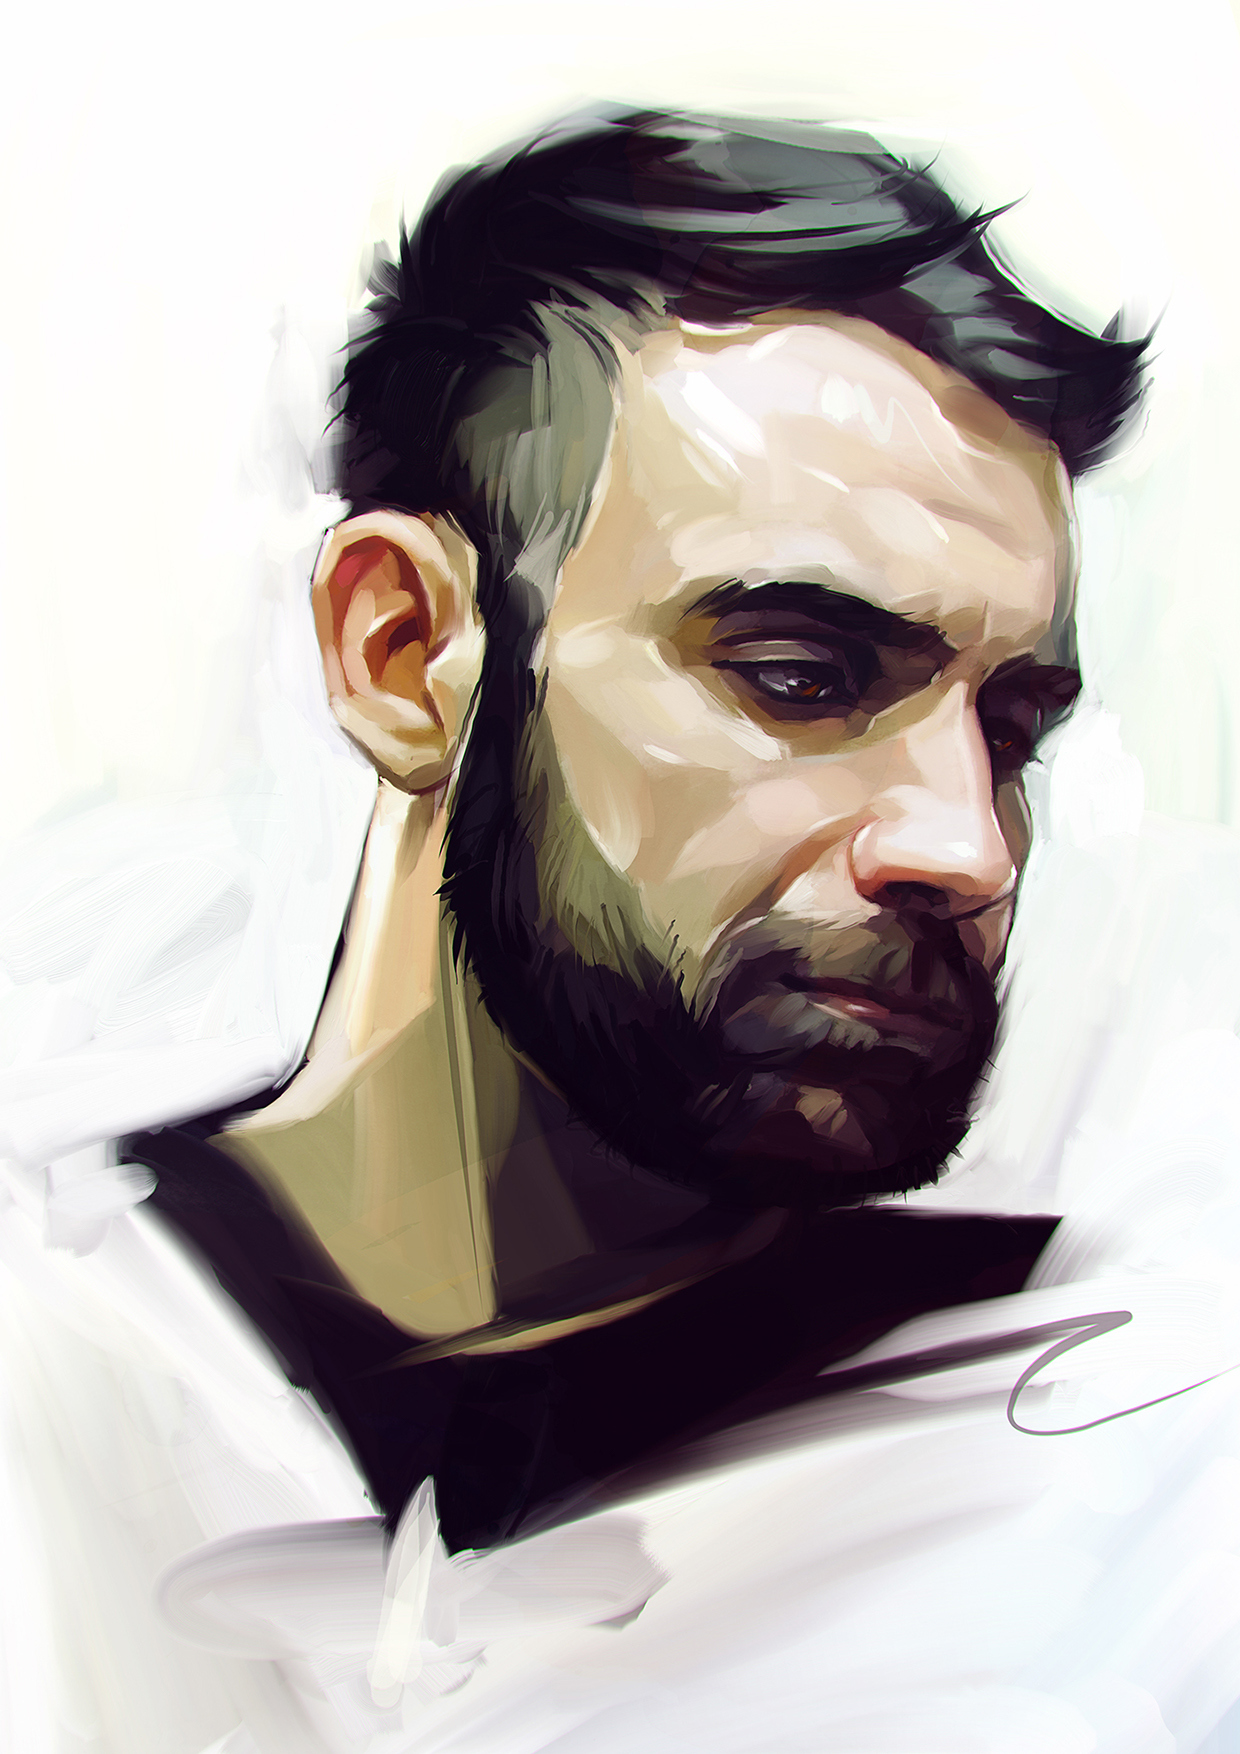 I will draw you a digital portrait in my style